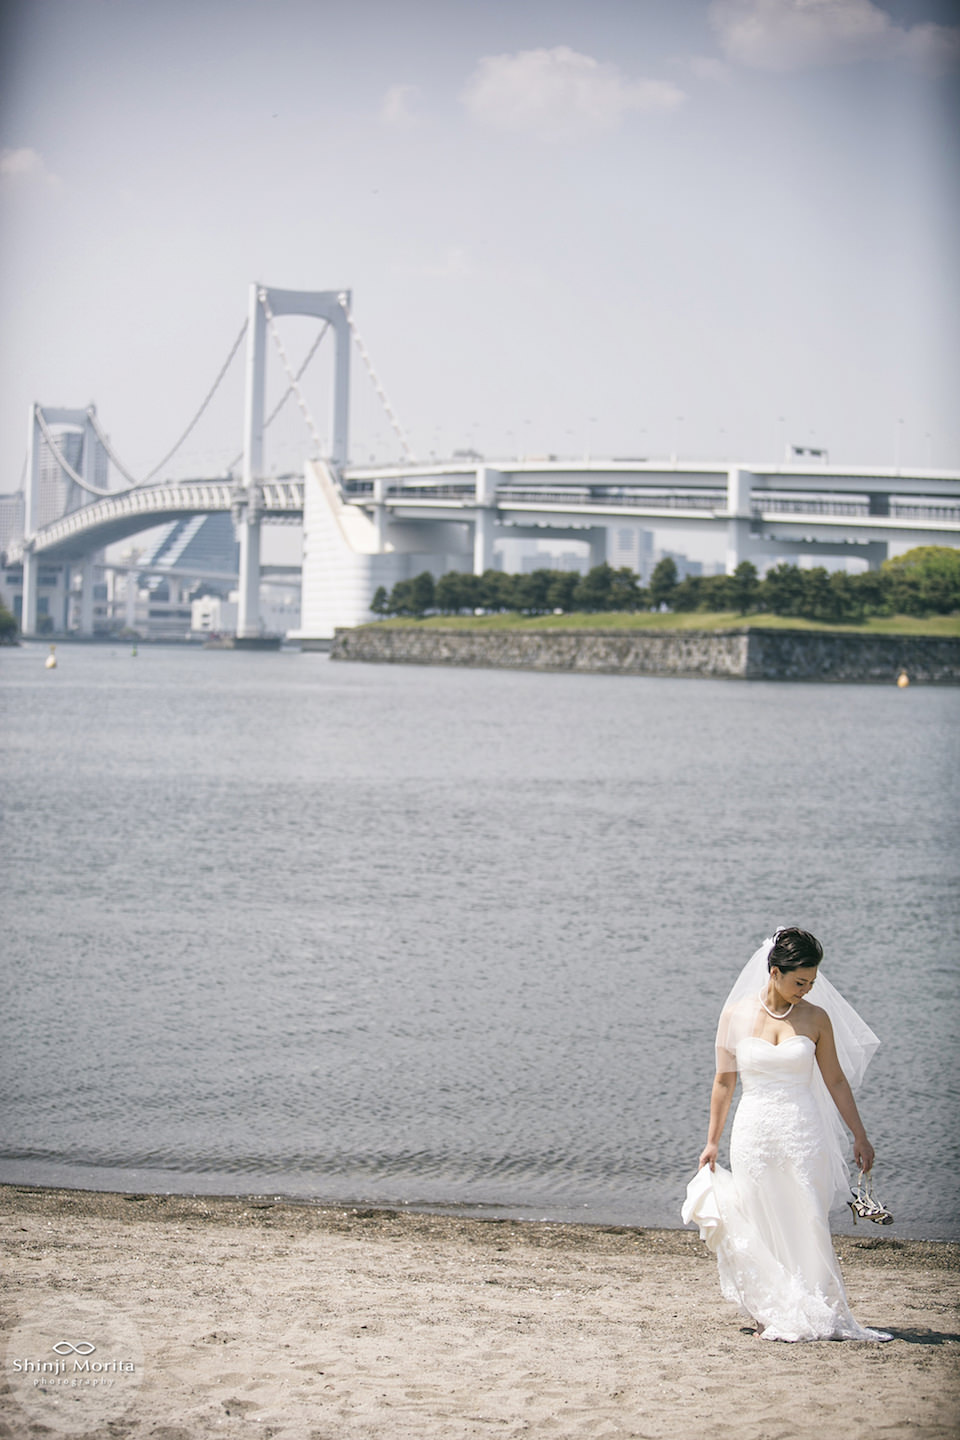 A woman dressed in wedding dress walking at the beach in Odaiba bay area